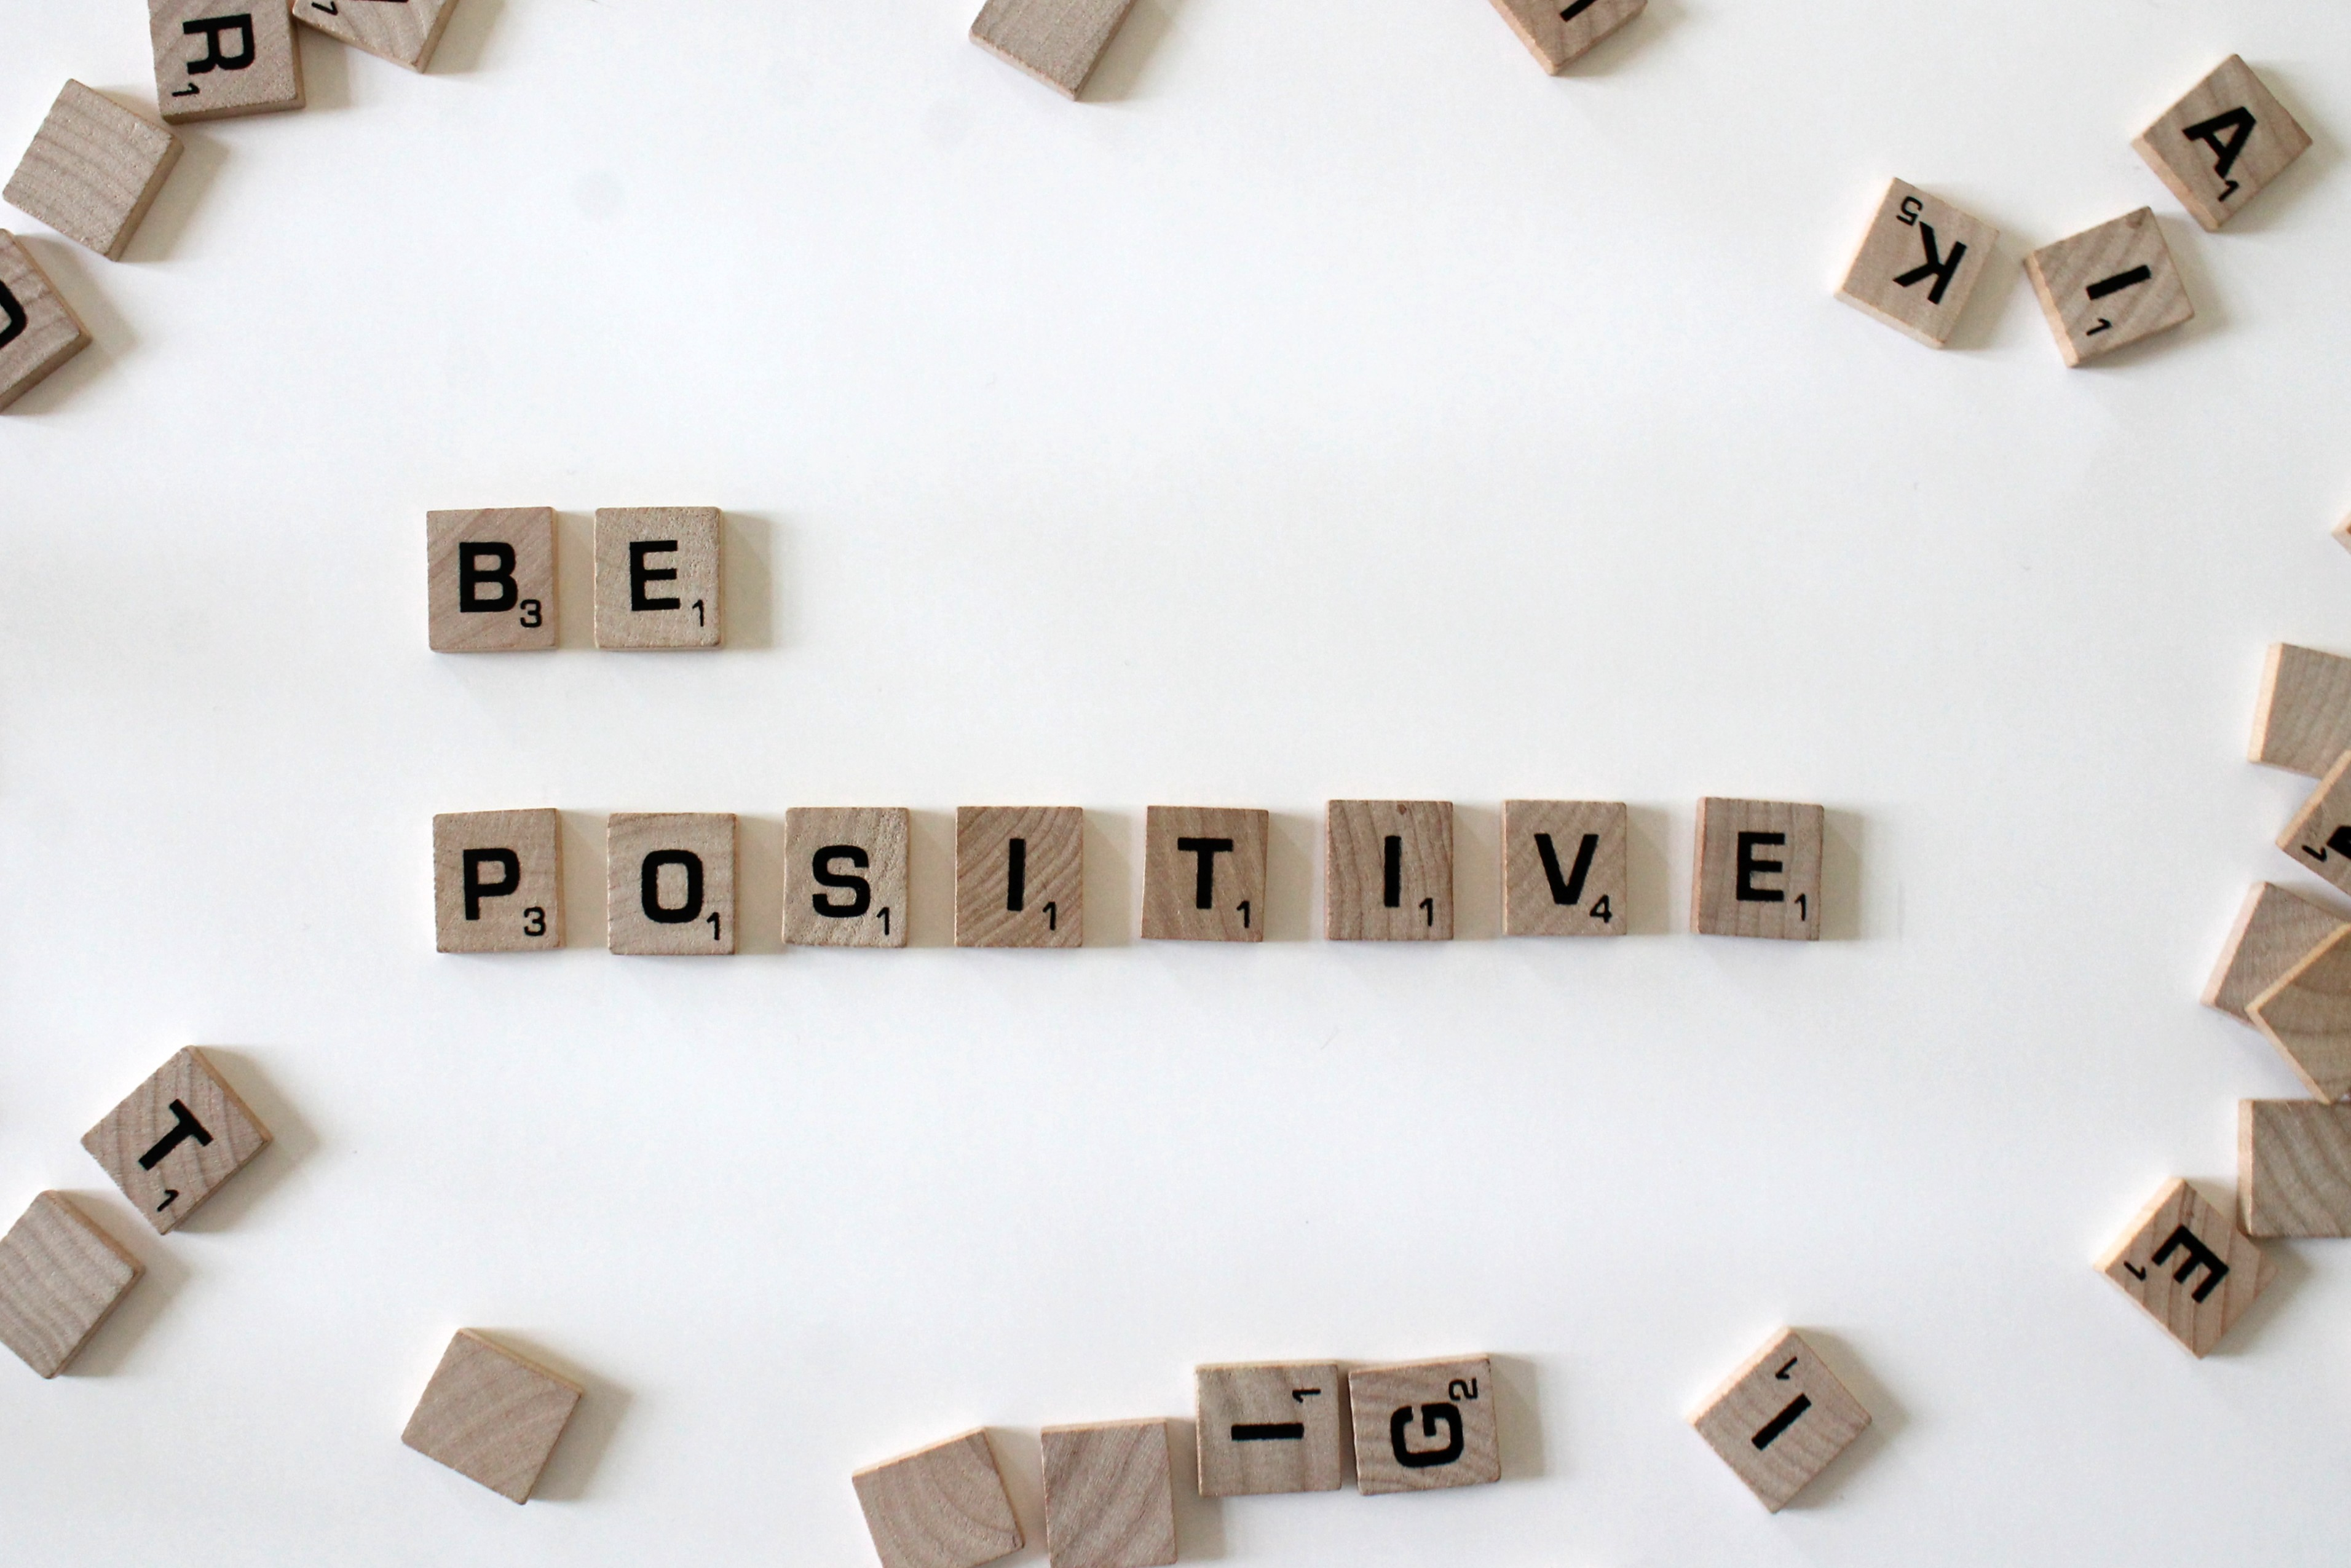 """Scrabble tiles spelling out the words """"Be positive"""""""